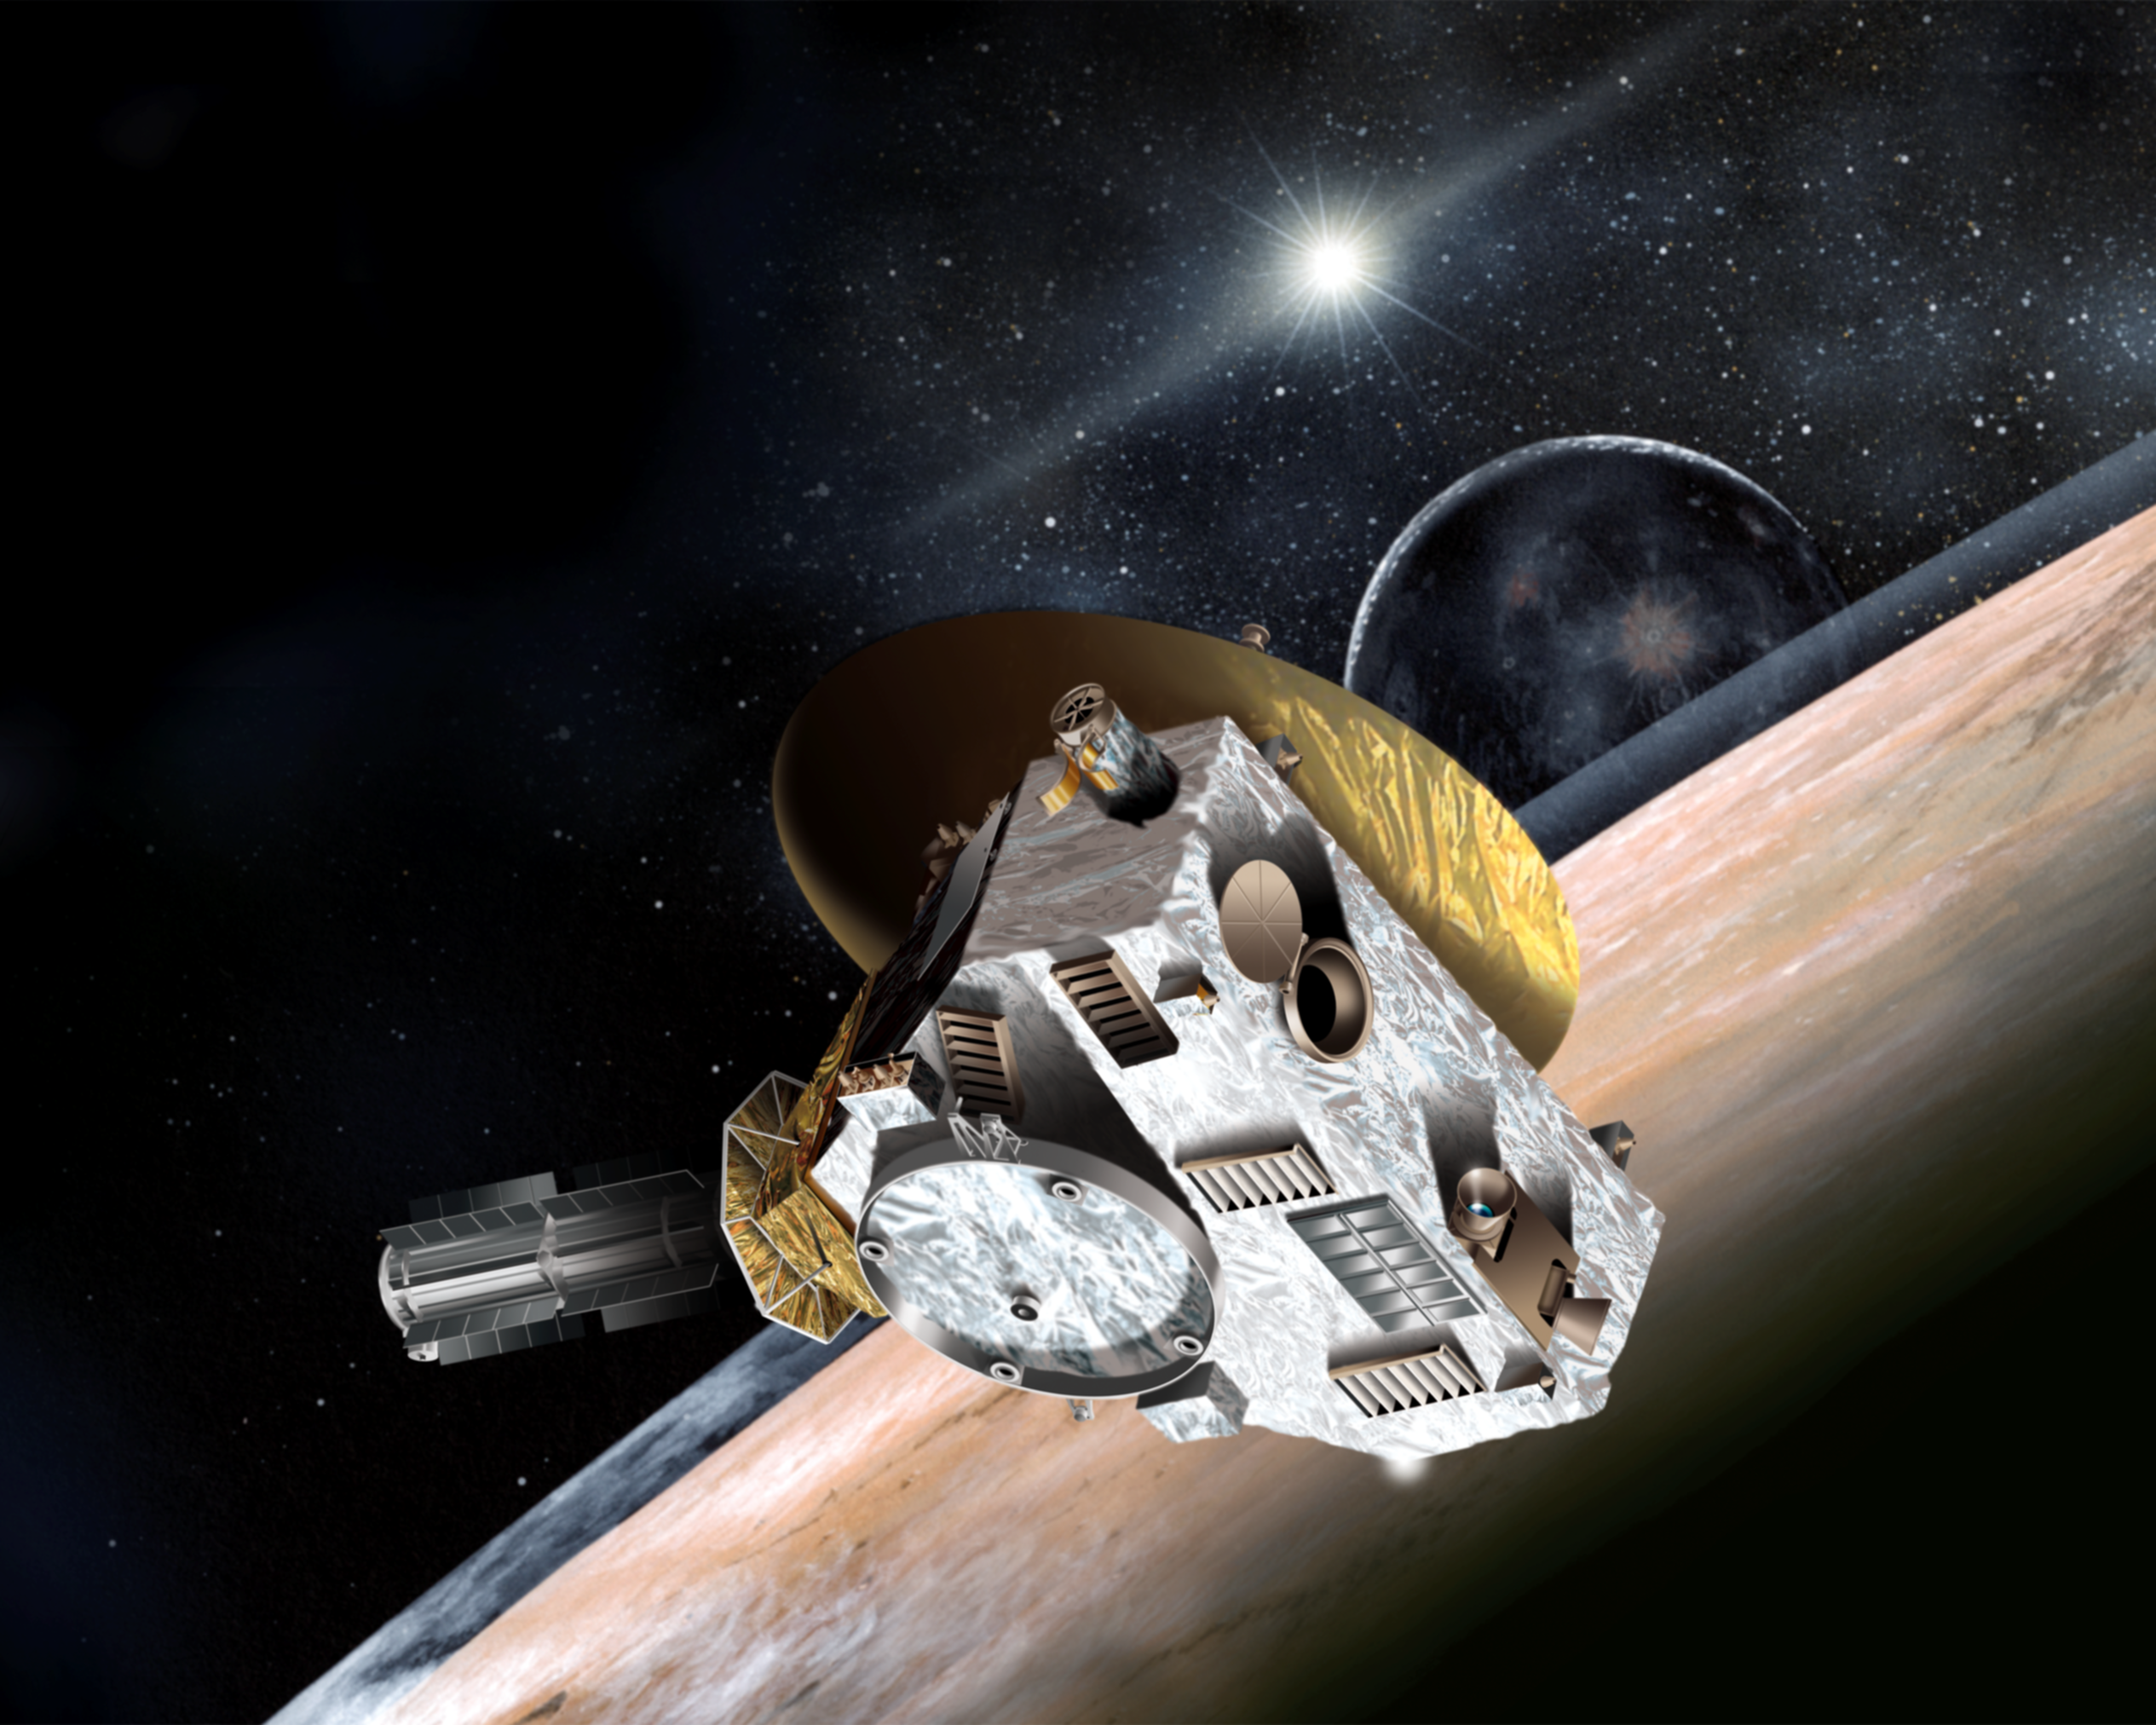 Liveblog: Nasa's probe New Horizons will make history as the first spacecraft ever to reach Pluto